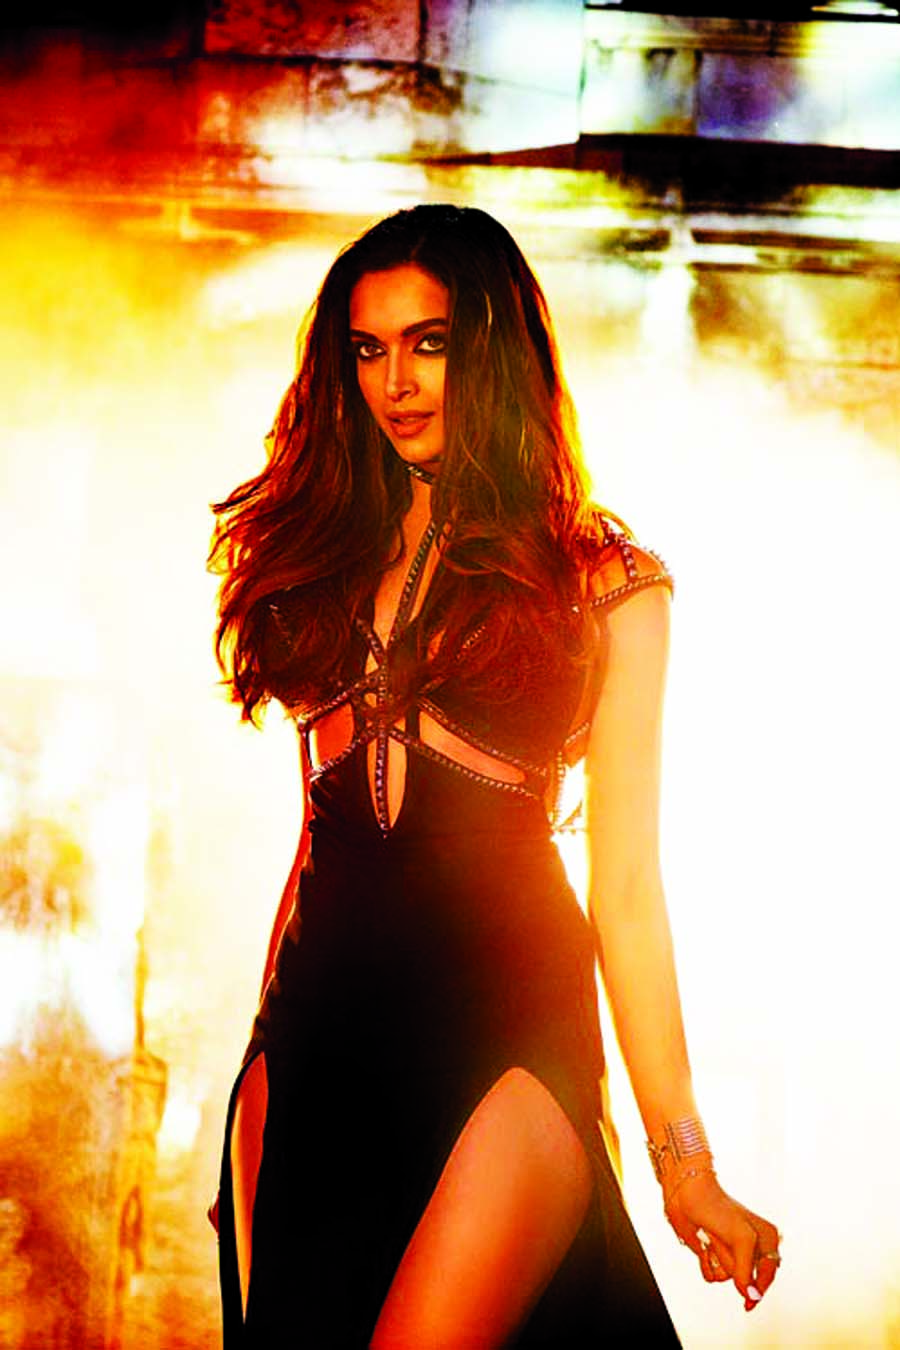 Deepika soaring the heat in Raabta title track